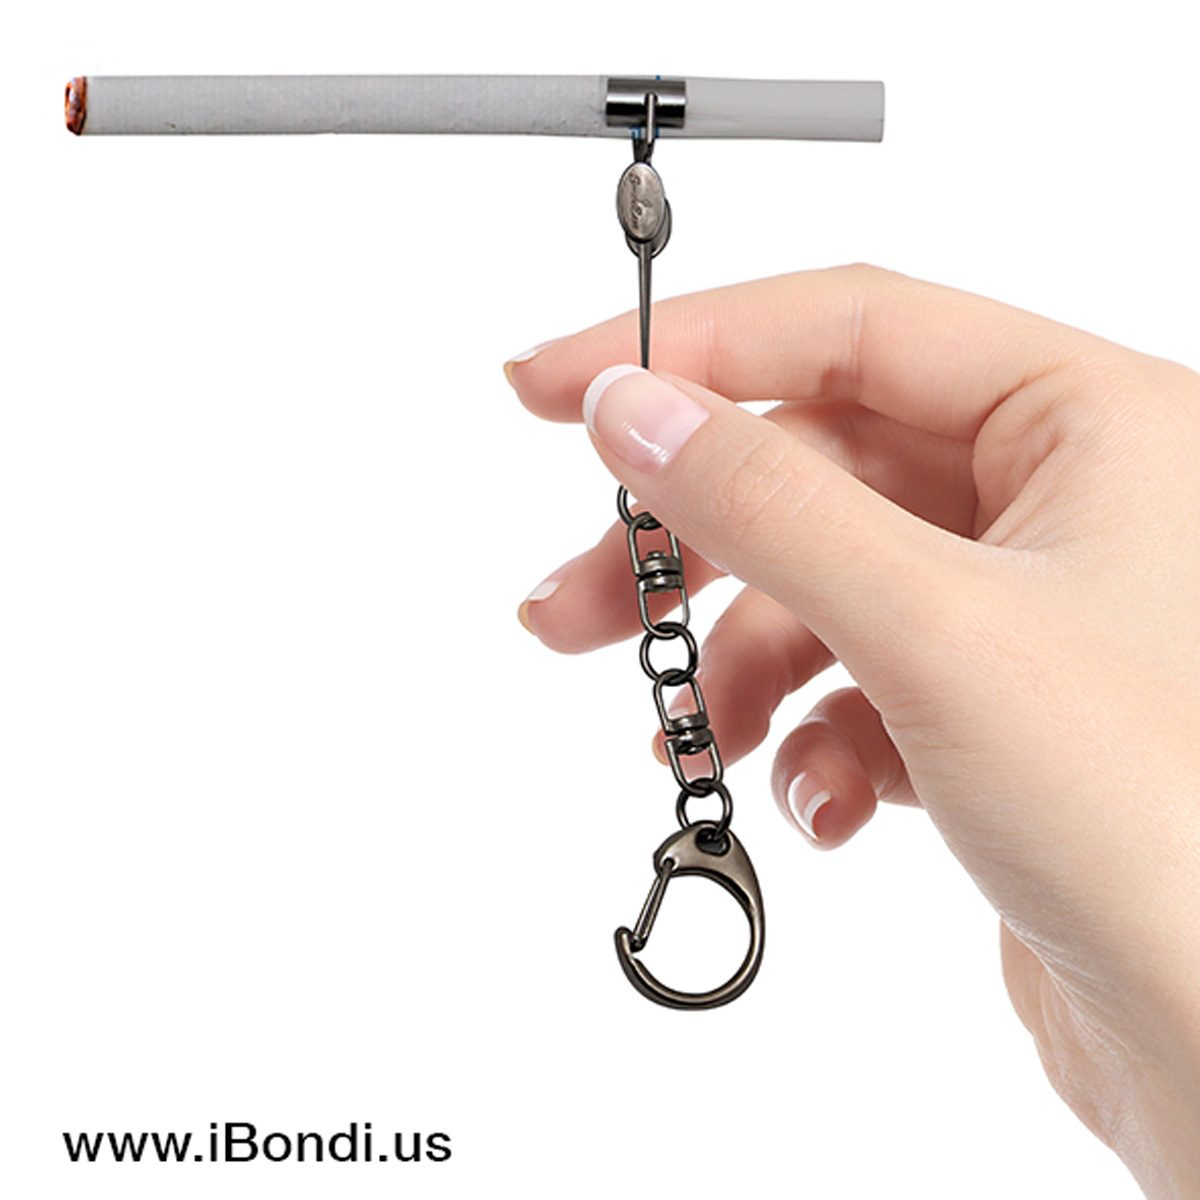 Smokease key holder main image